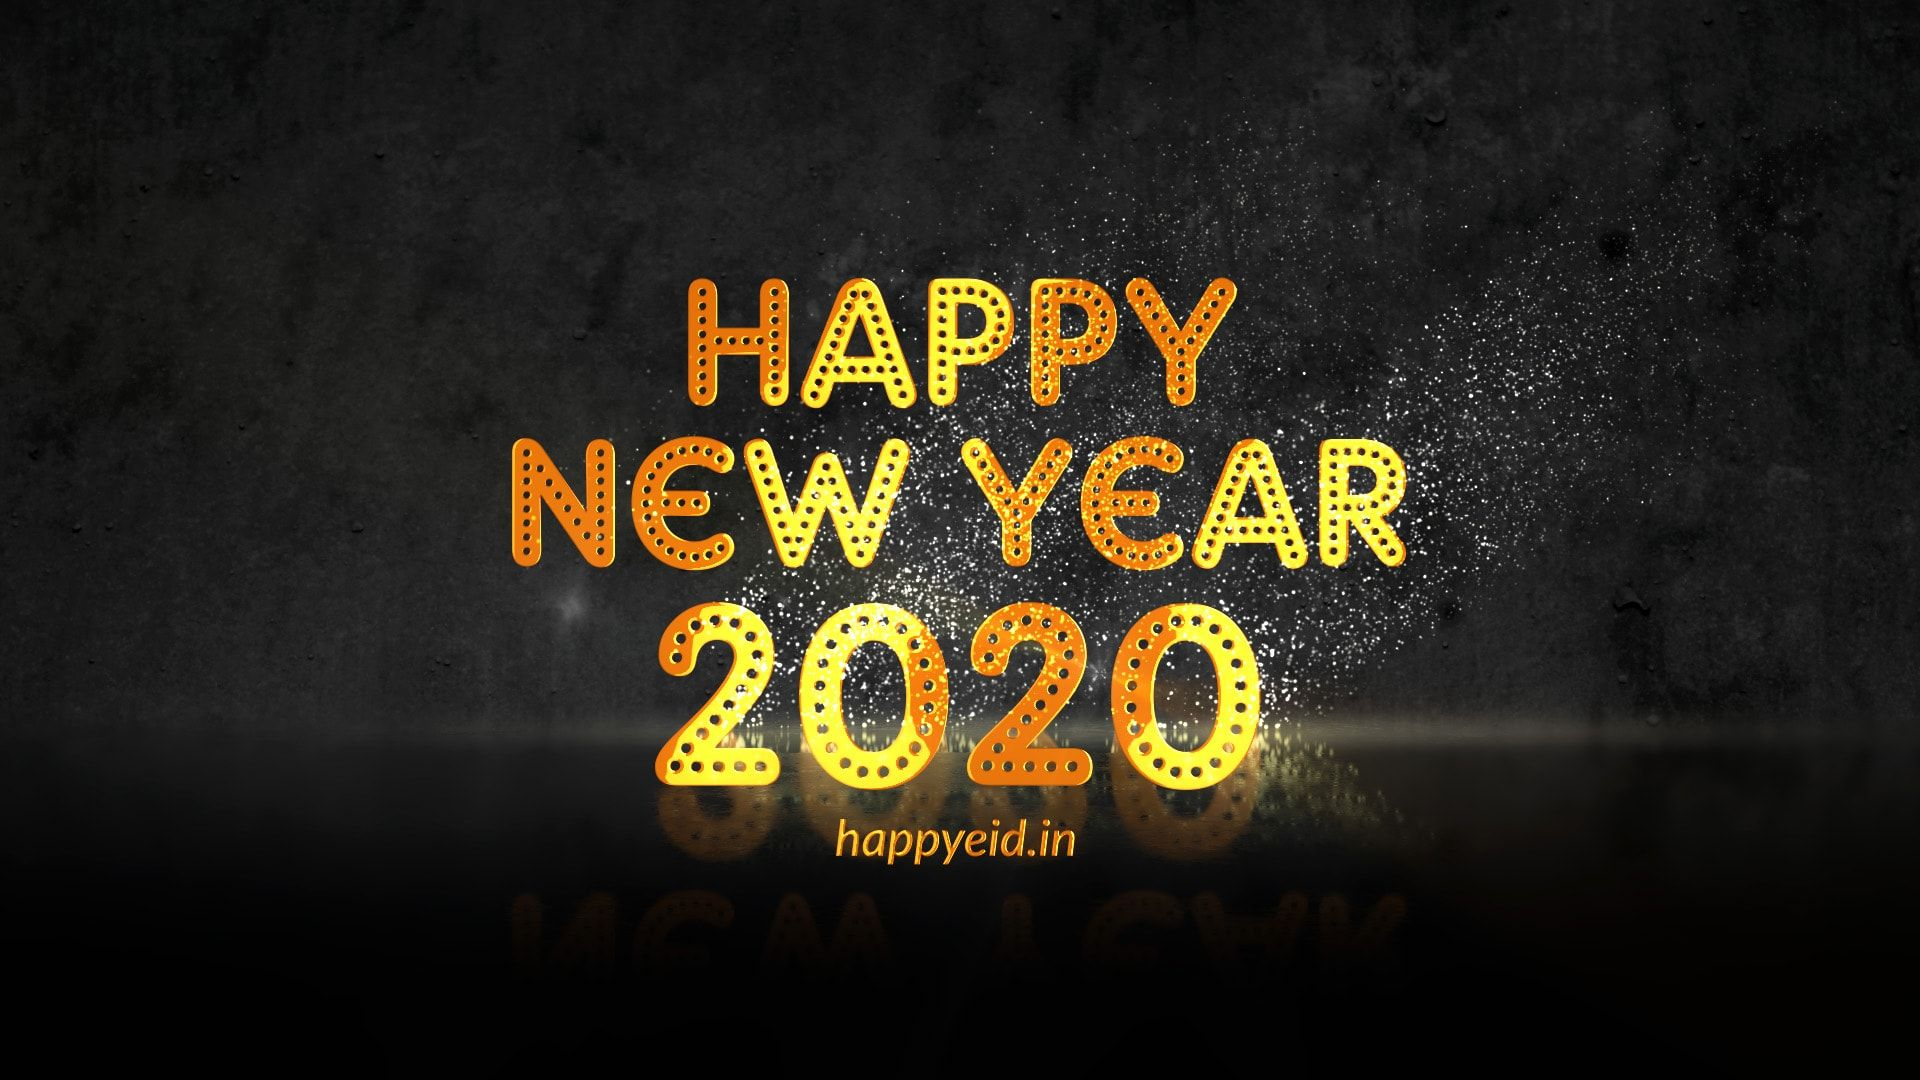 Happy New Year 2020 Wallpapers for iPhone